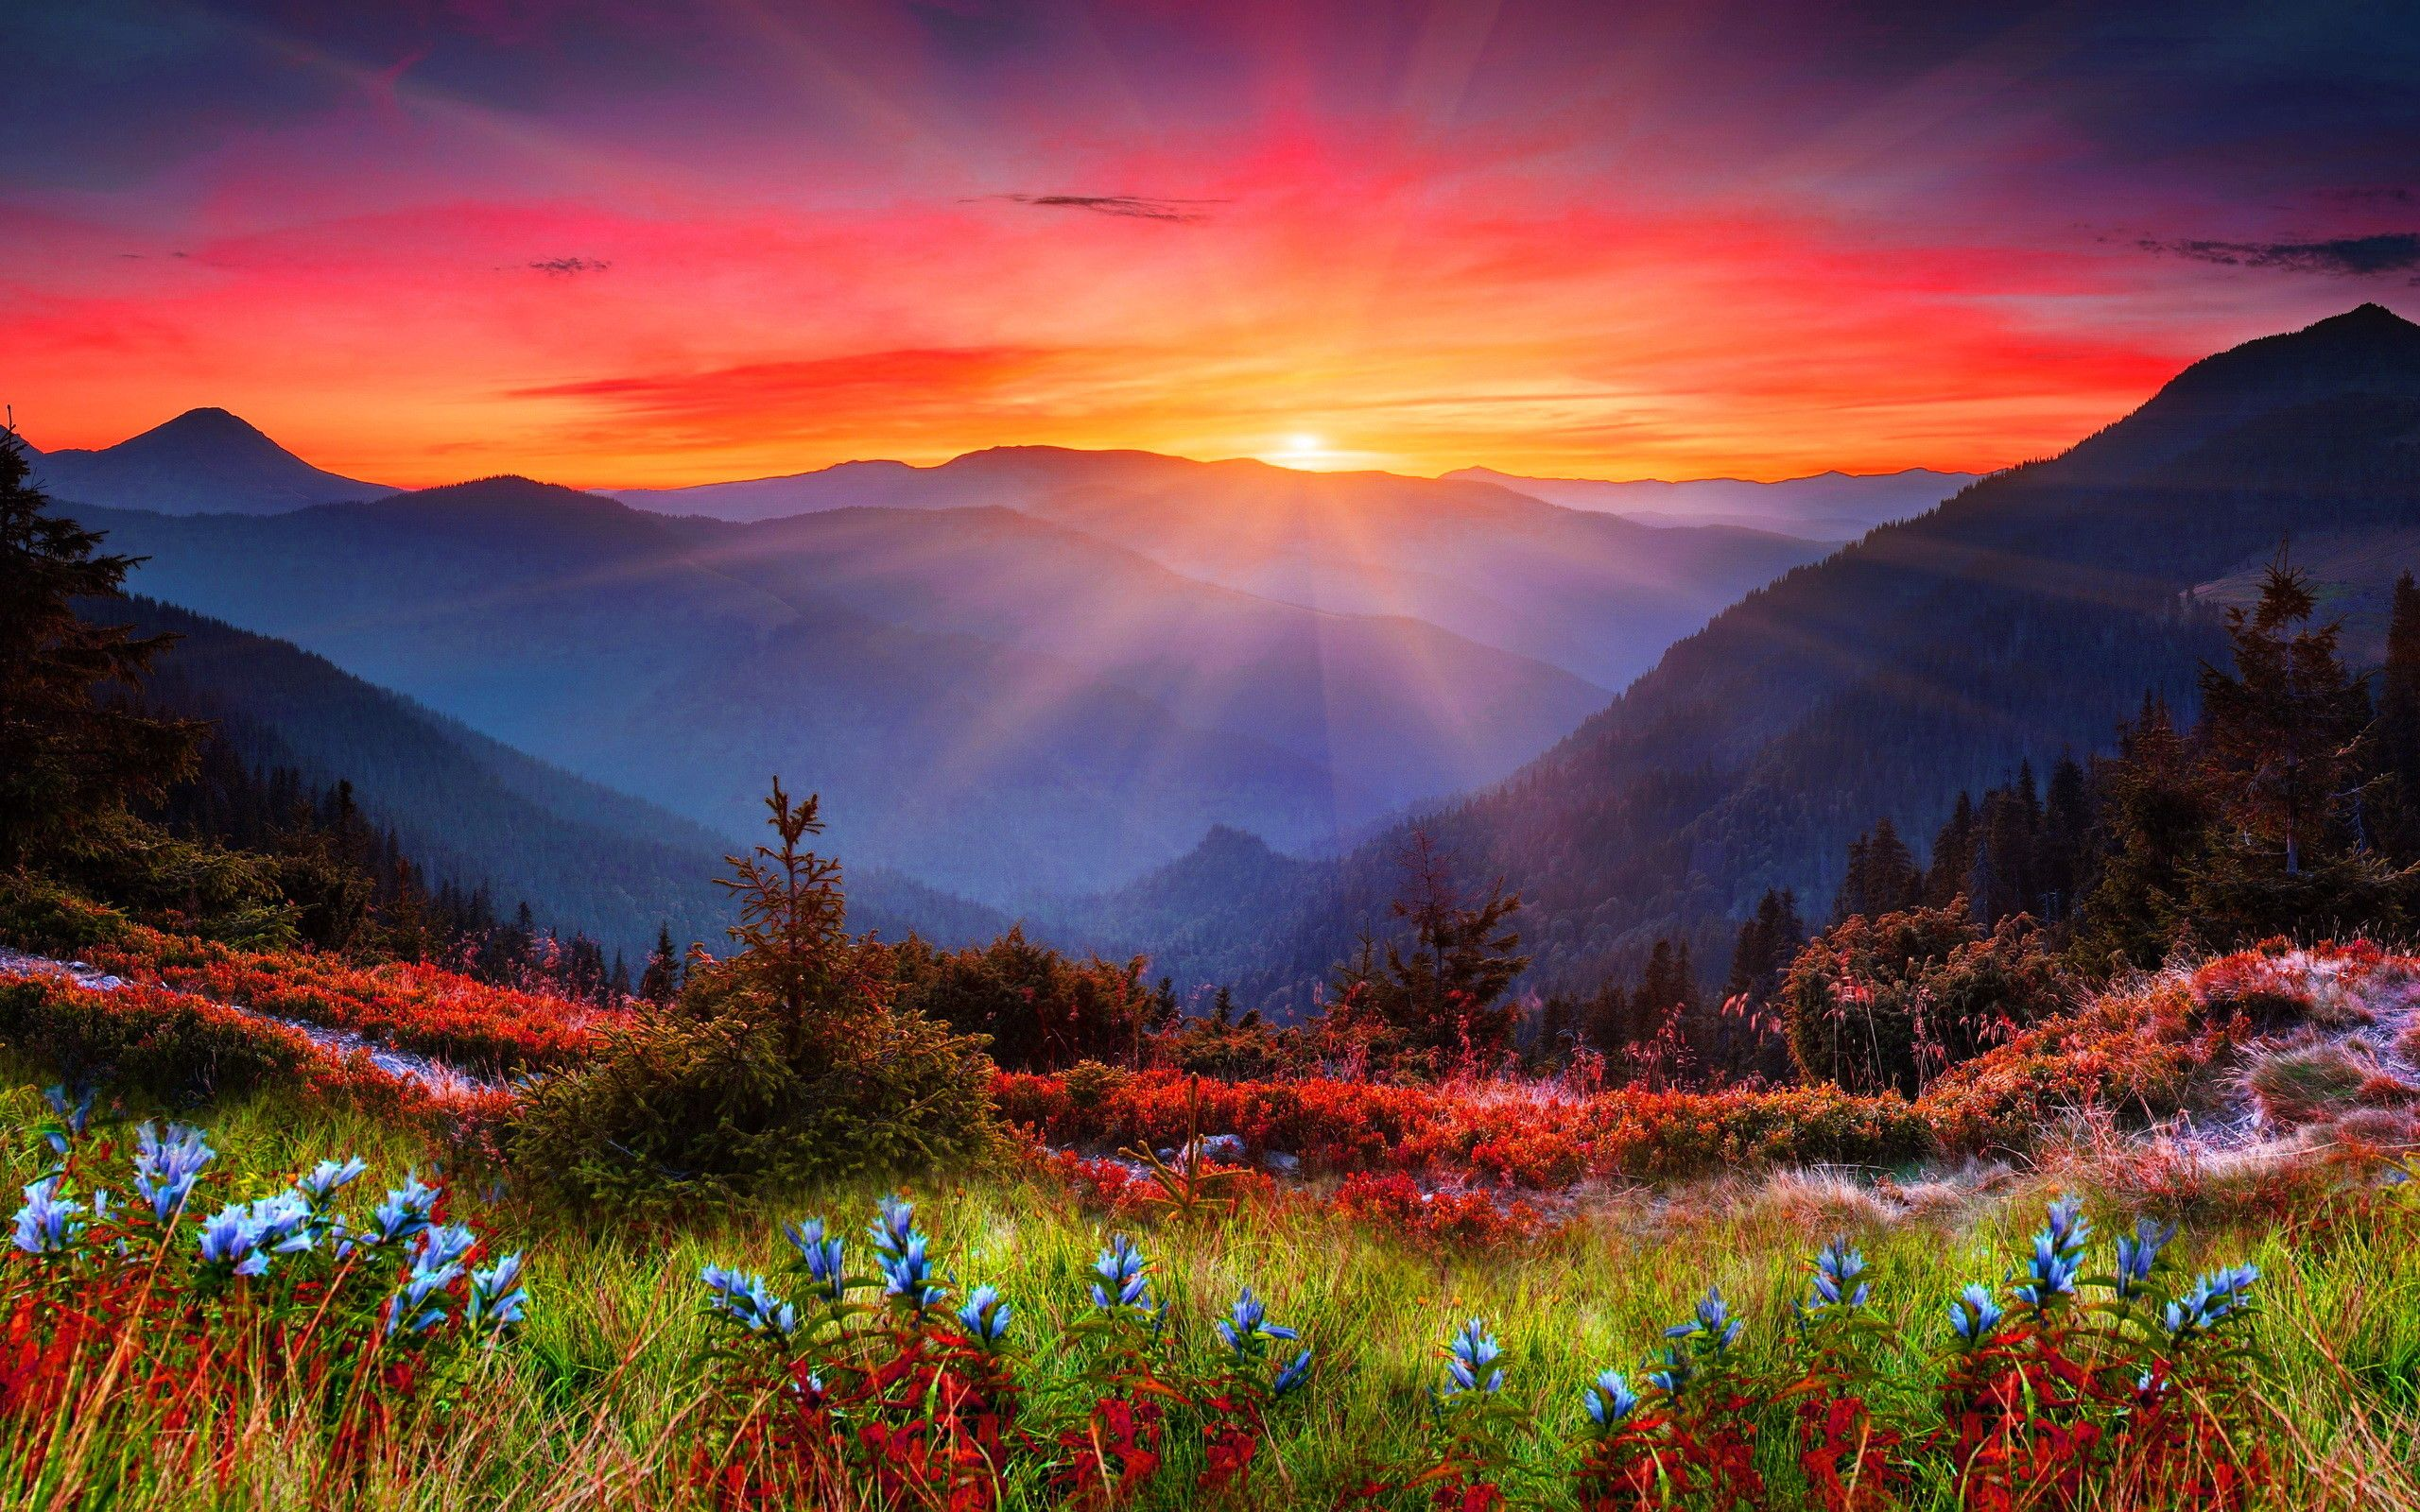 Res 2560x1600 Mountain Sunset Wallpaper 1080p Zu5 In 2020 Nature Photography Scenery Mountain Sunset